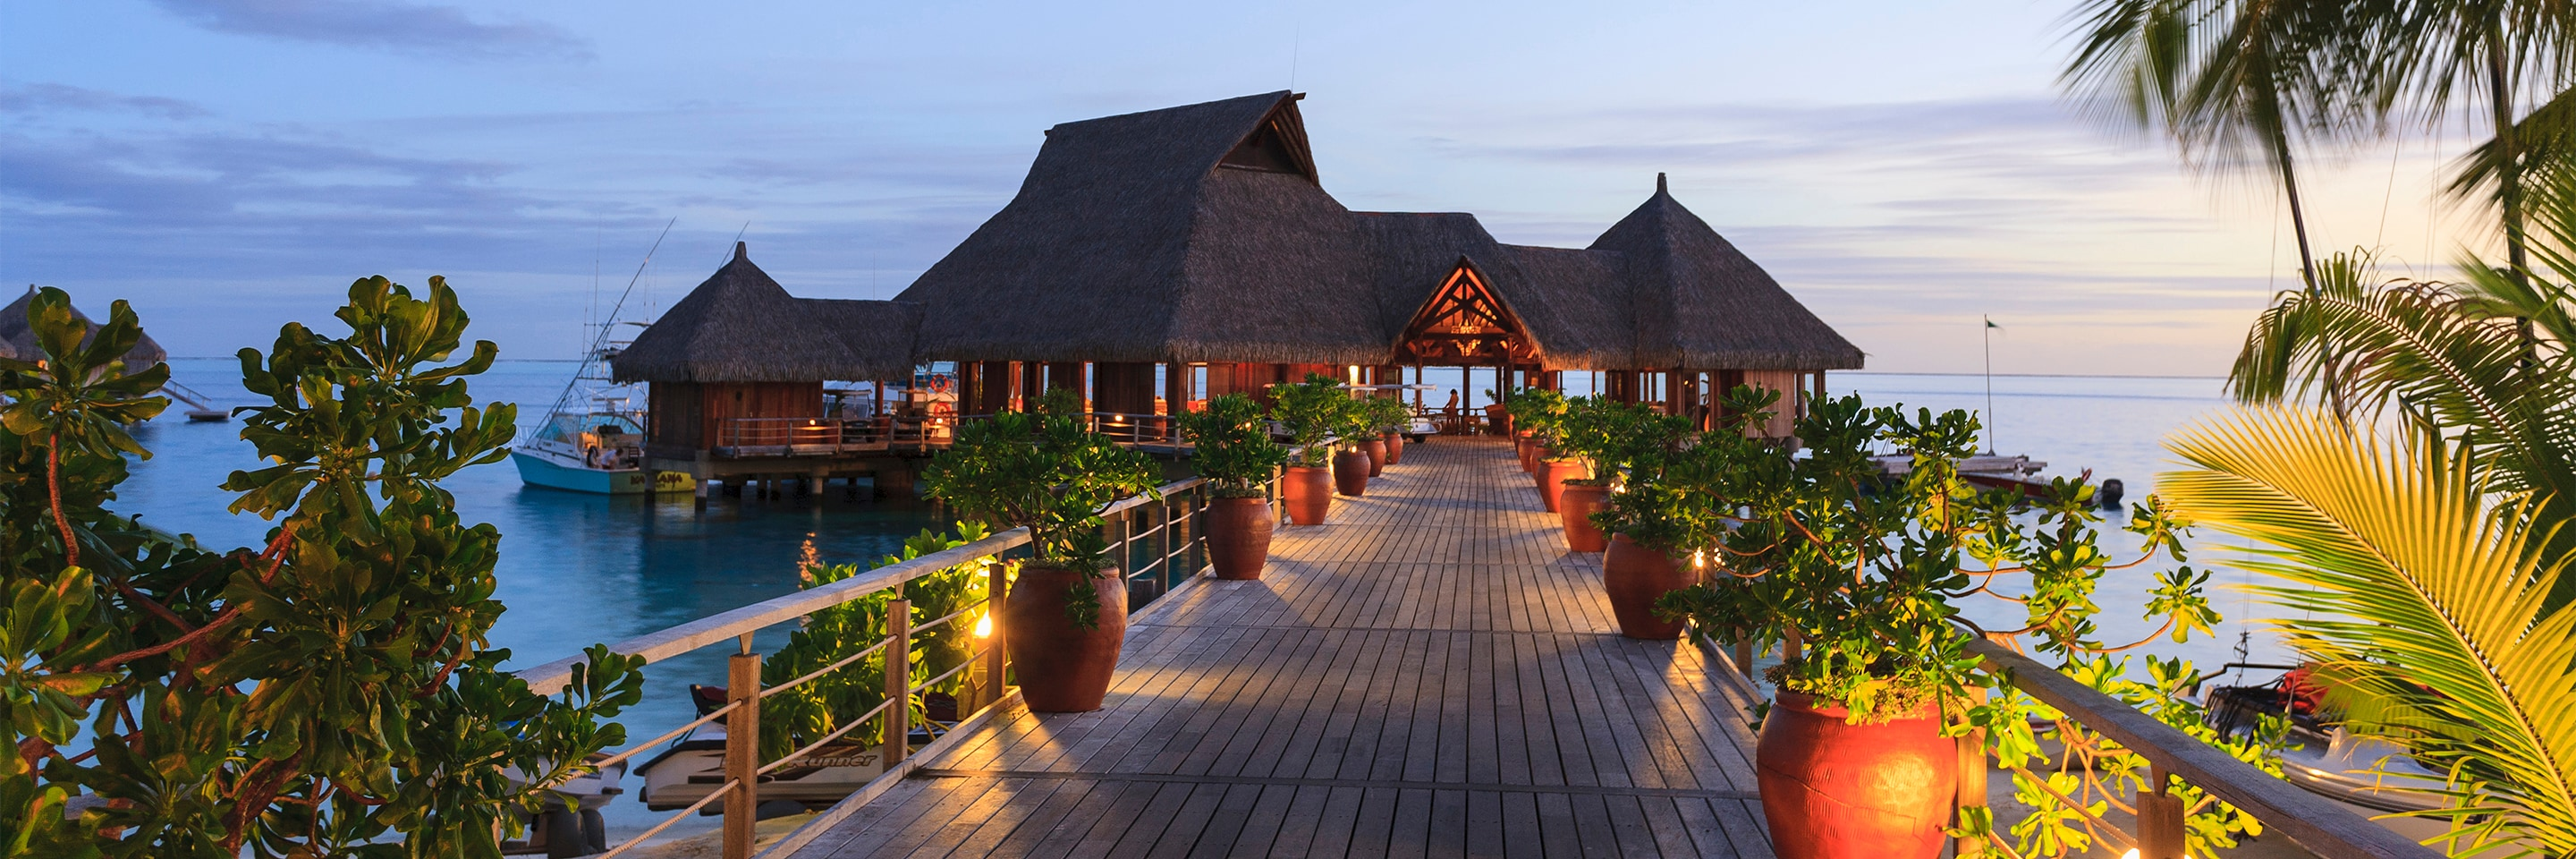 Luxury hotel and restaurant situated on a tropical ocean.